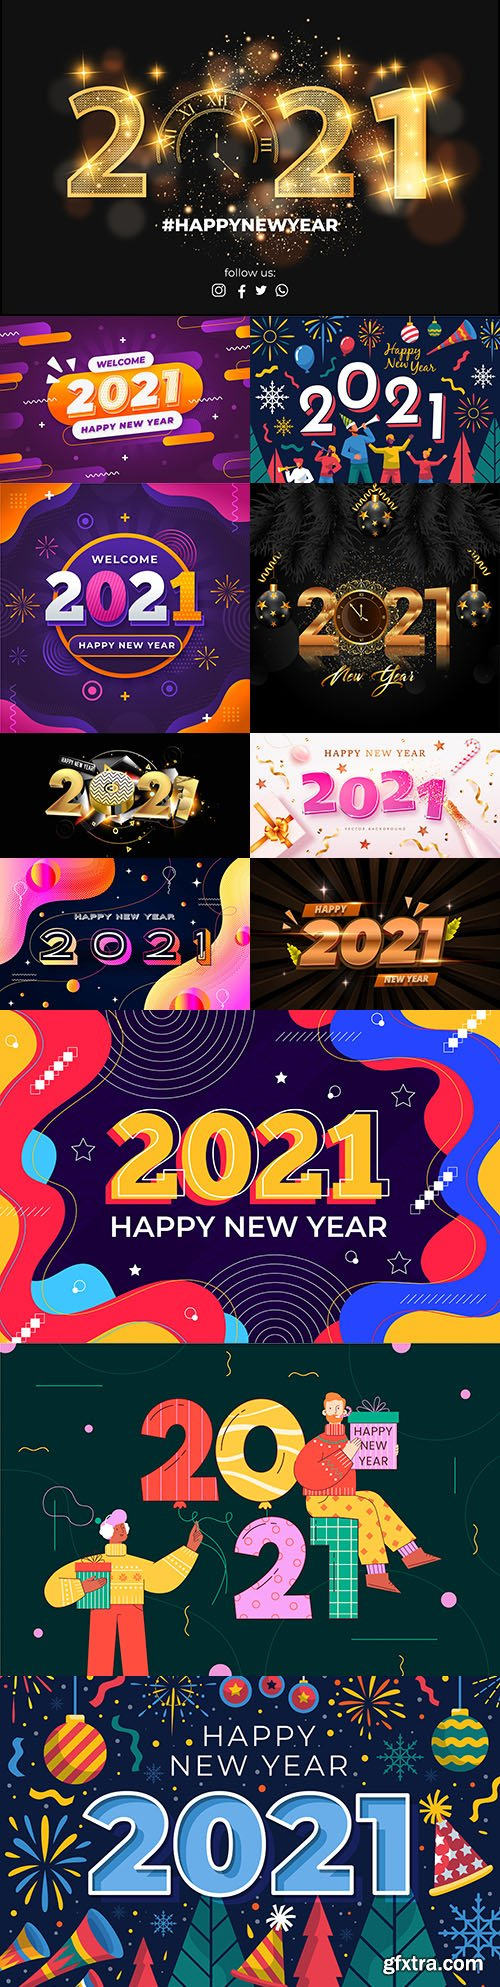 New Year 2021 background in flat design inscription